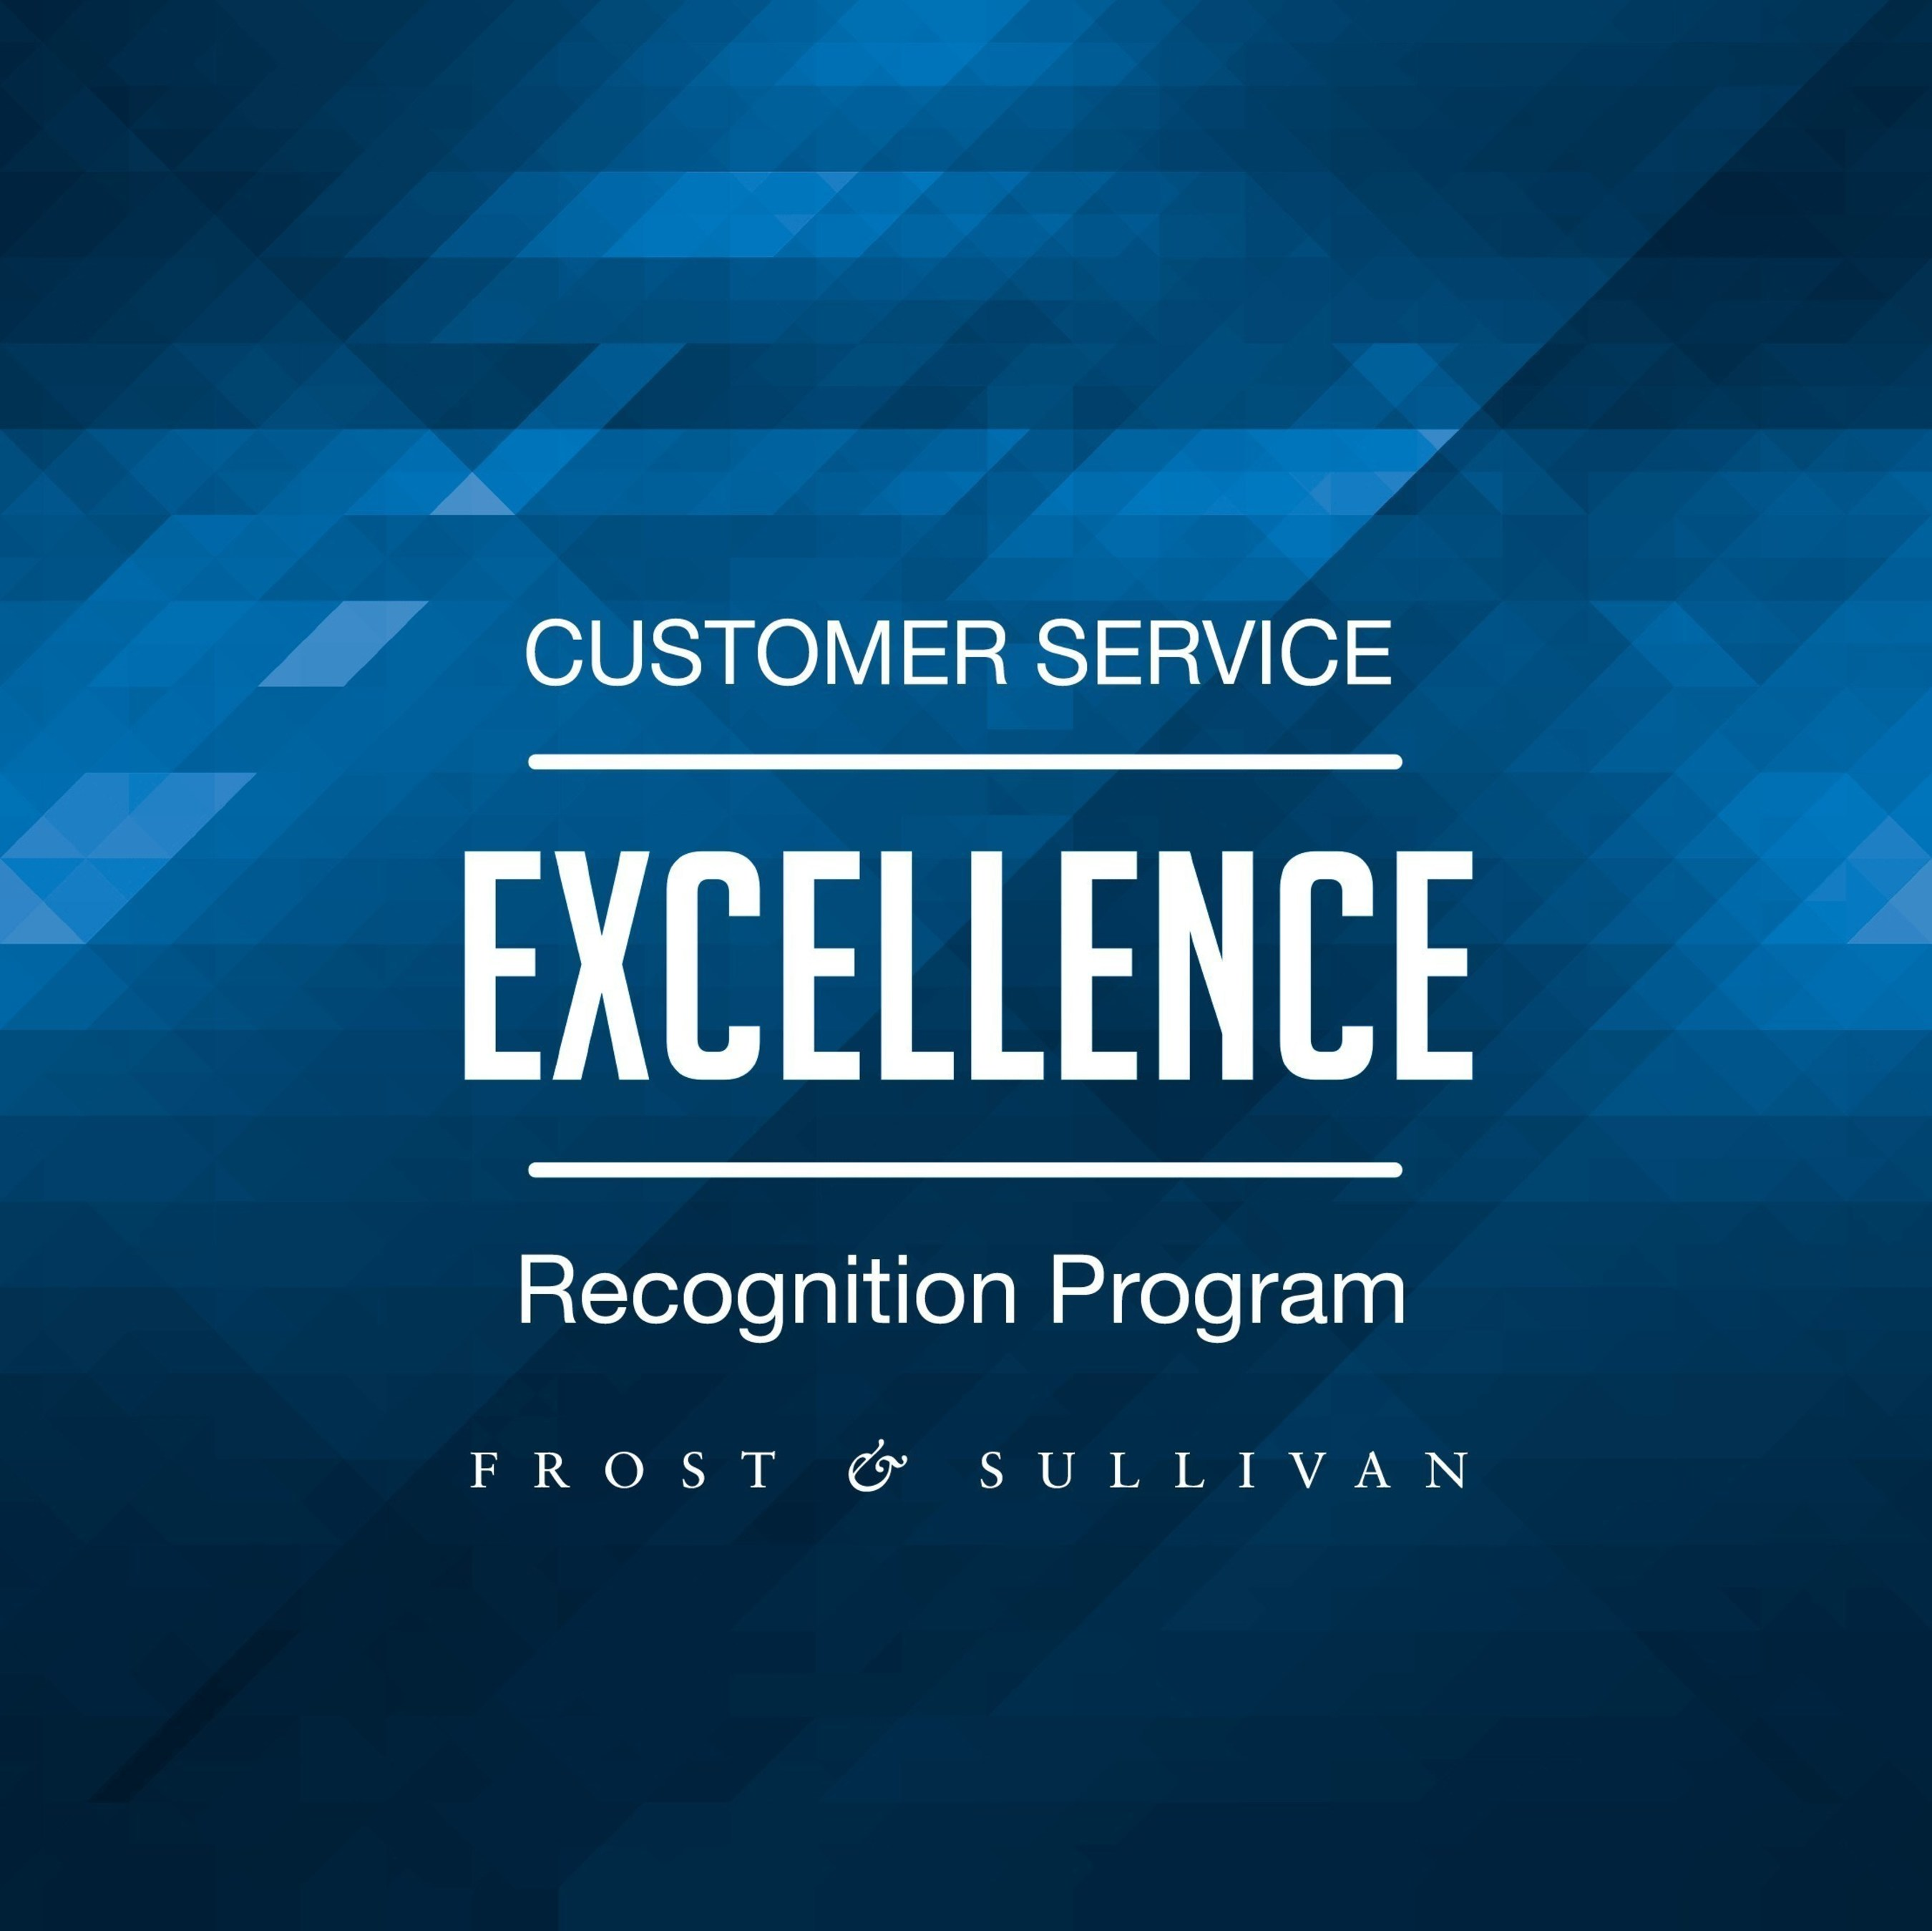 Rocana has been named a winner in Frost & Sullivan's 2016 Customer Service Excellence Recognition Program. For more information about the Customer Service Excellence Recognition Program, visit www.frost.com/recognition.